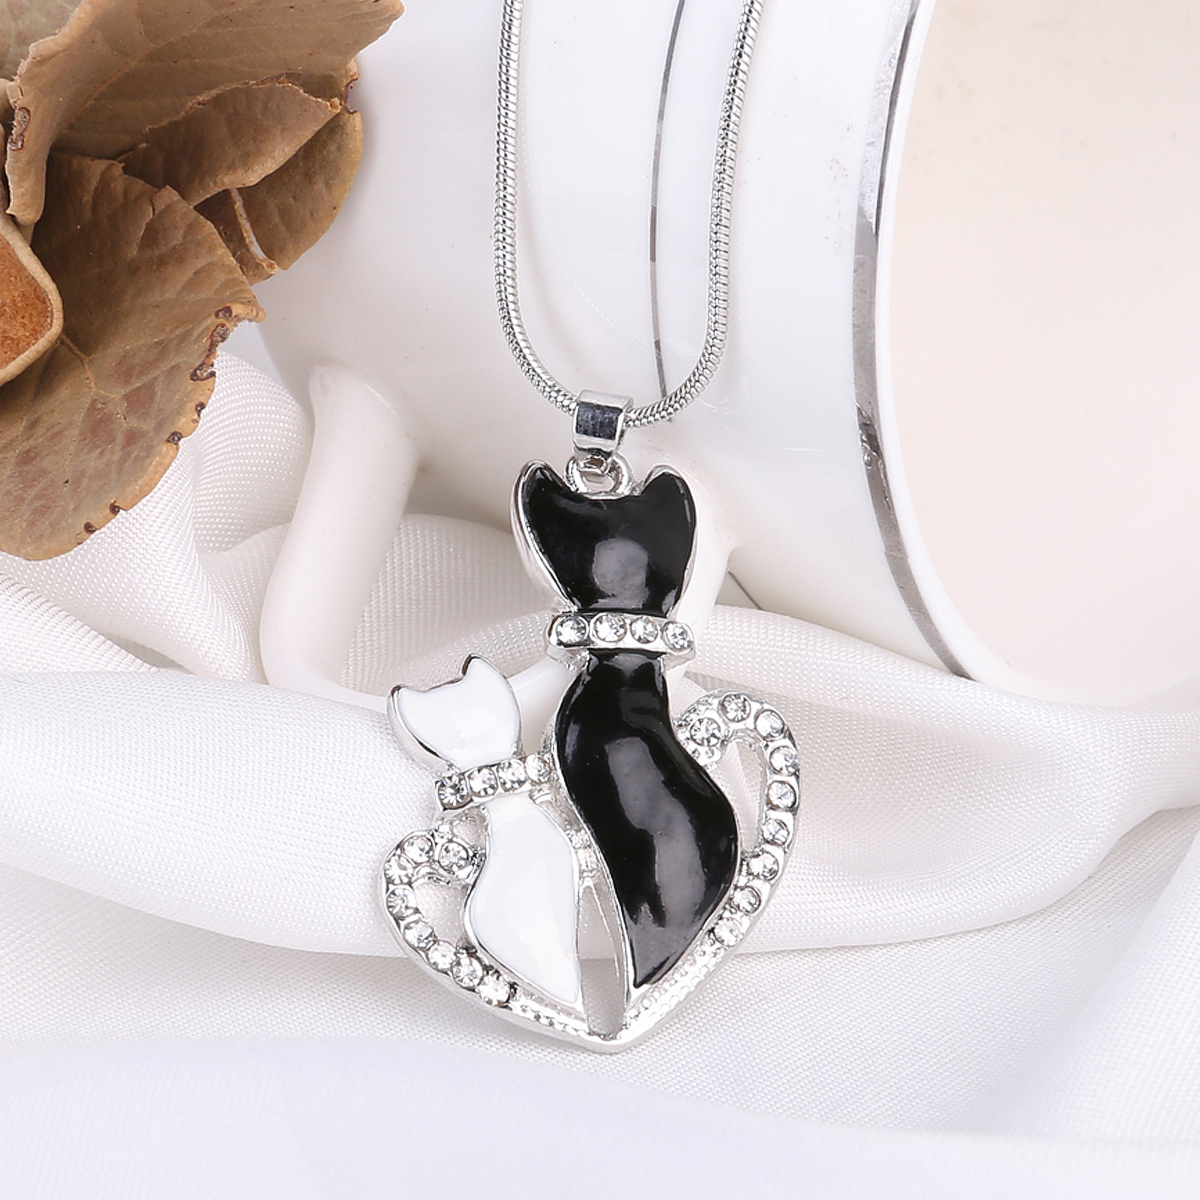 Shellhard Lovely Pet Chain Necklaces Charms Crystal Black And White Cat Love Heart Pendant Necklace For Women Jewelry Kolye